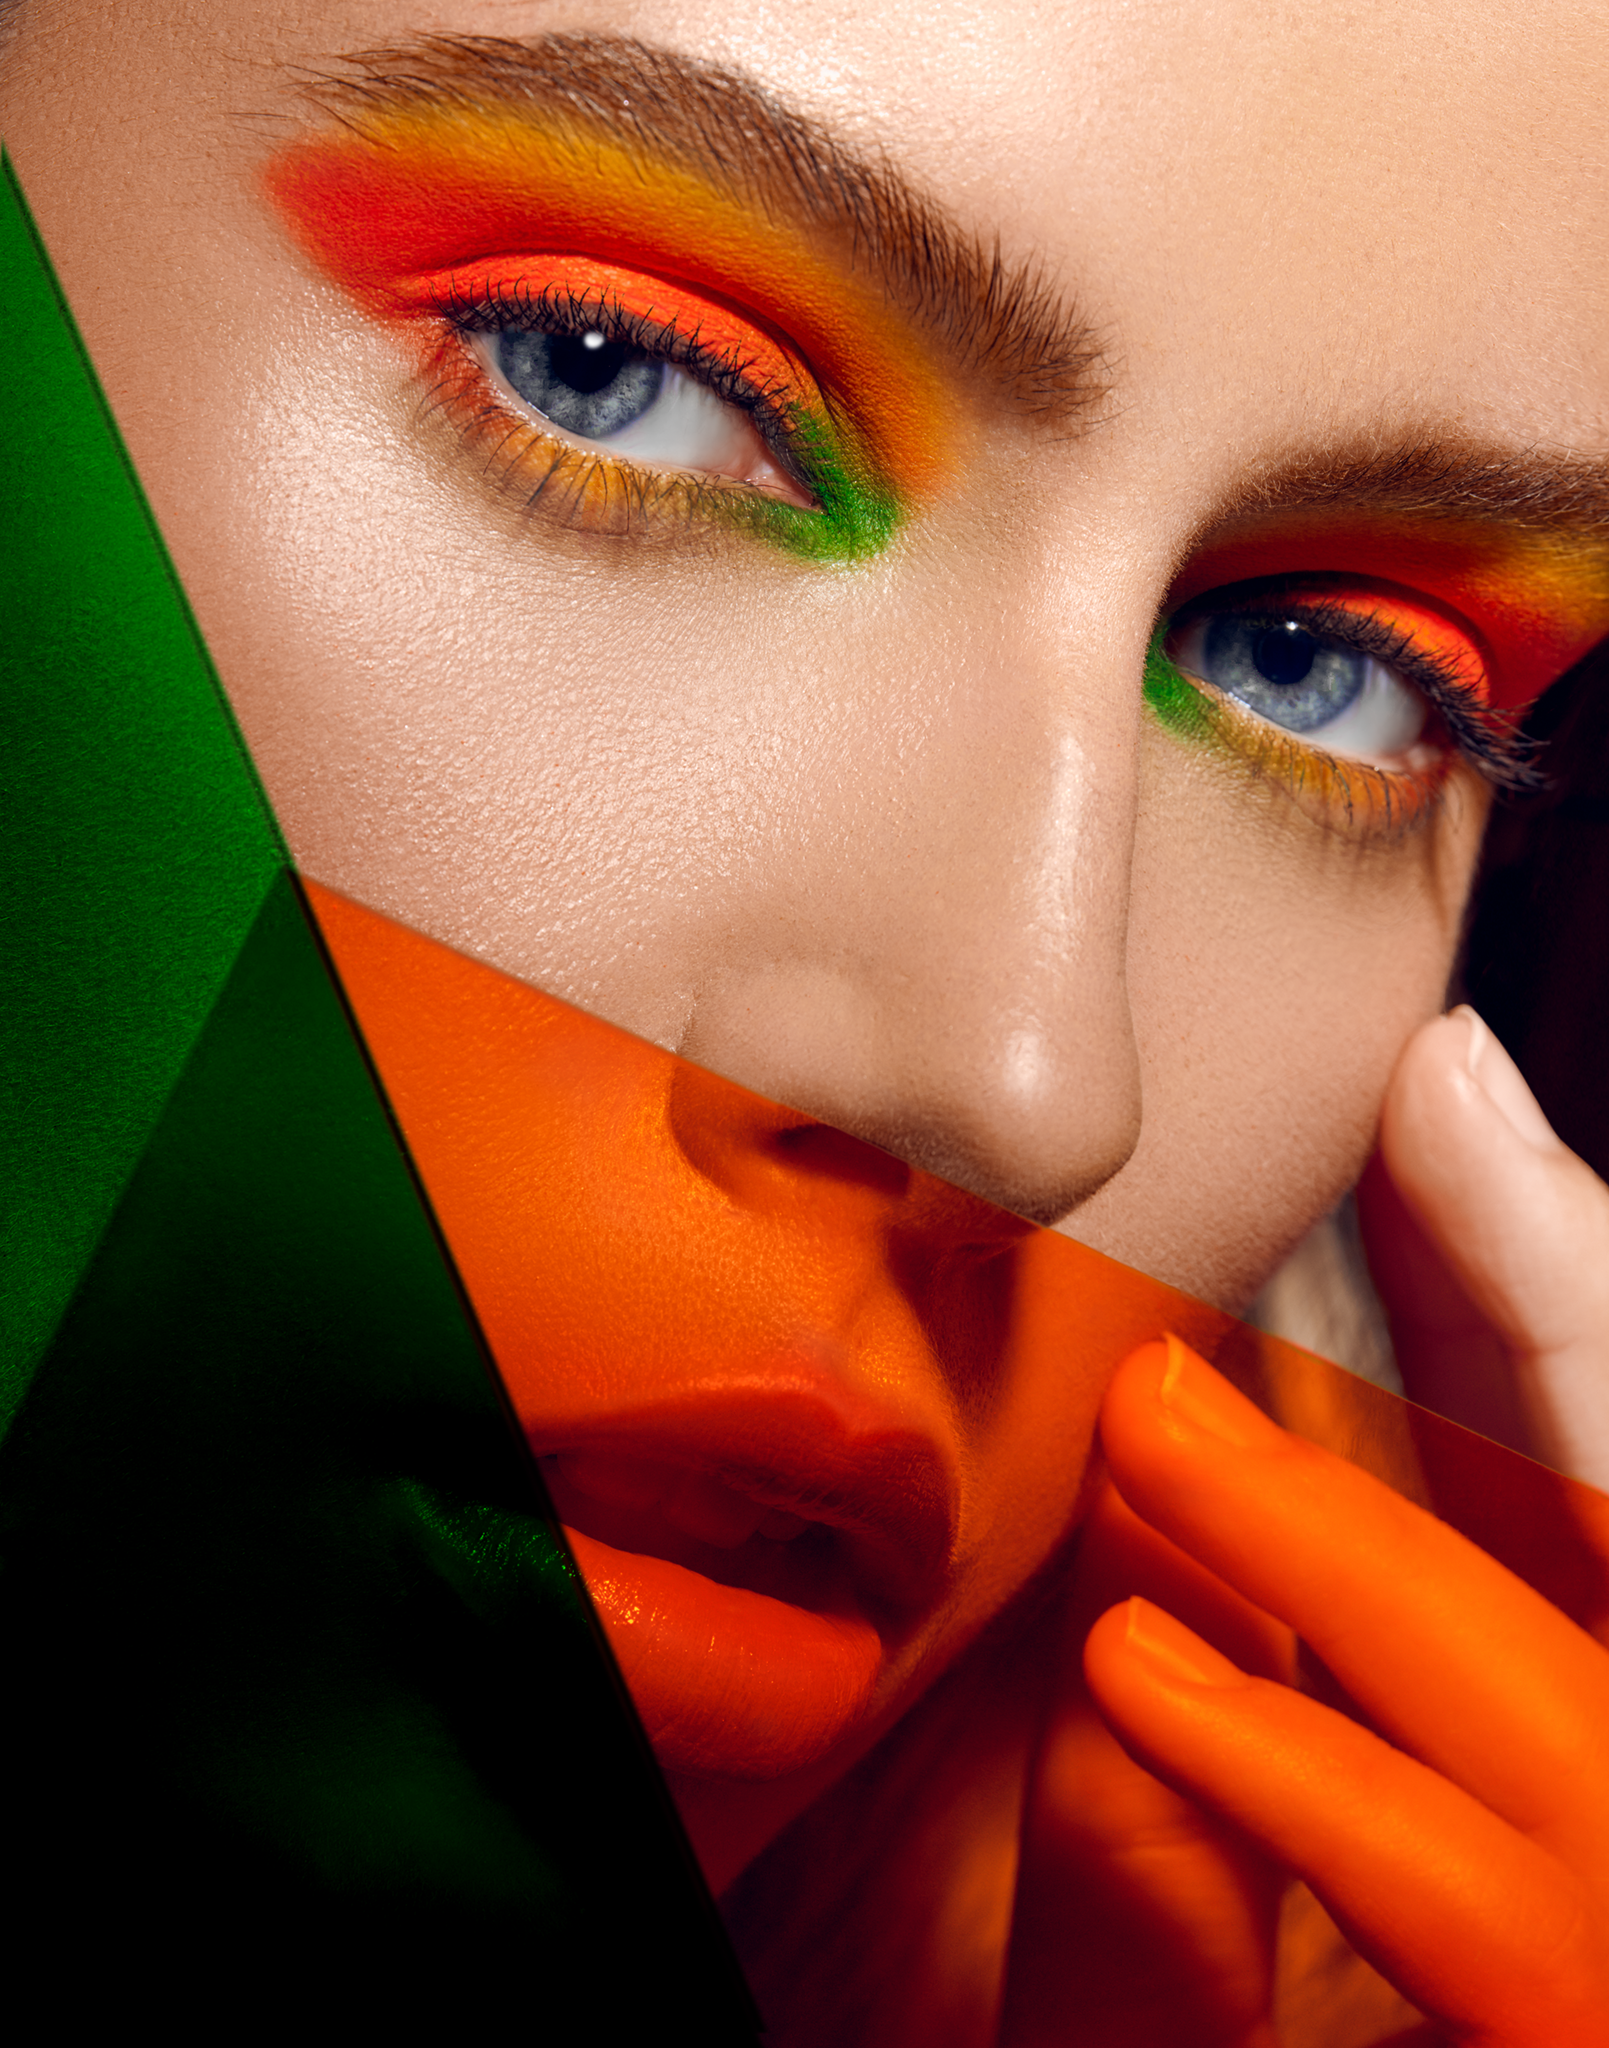 OBVIOUS - SEPTEMBER 2018   OYG BIV beauty editorial by Antonio Martez, New York Fashion Photographer, was featured in the September 2018 edition of Obvious Magazine. The editorial was a 8 page spread for that edition.